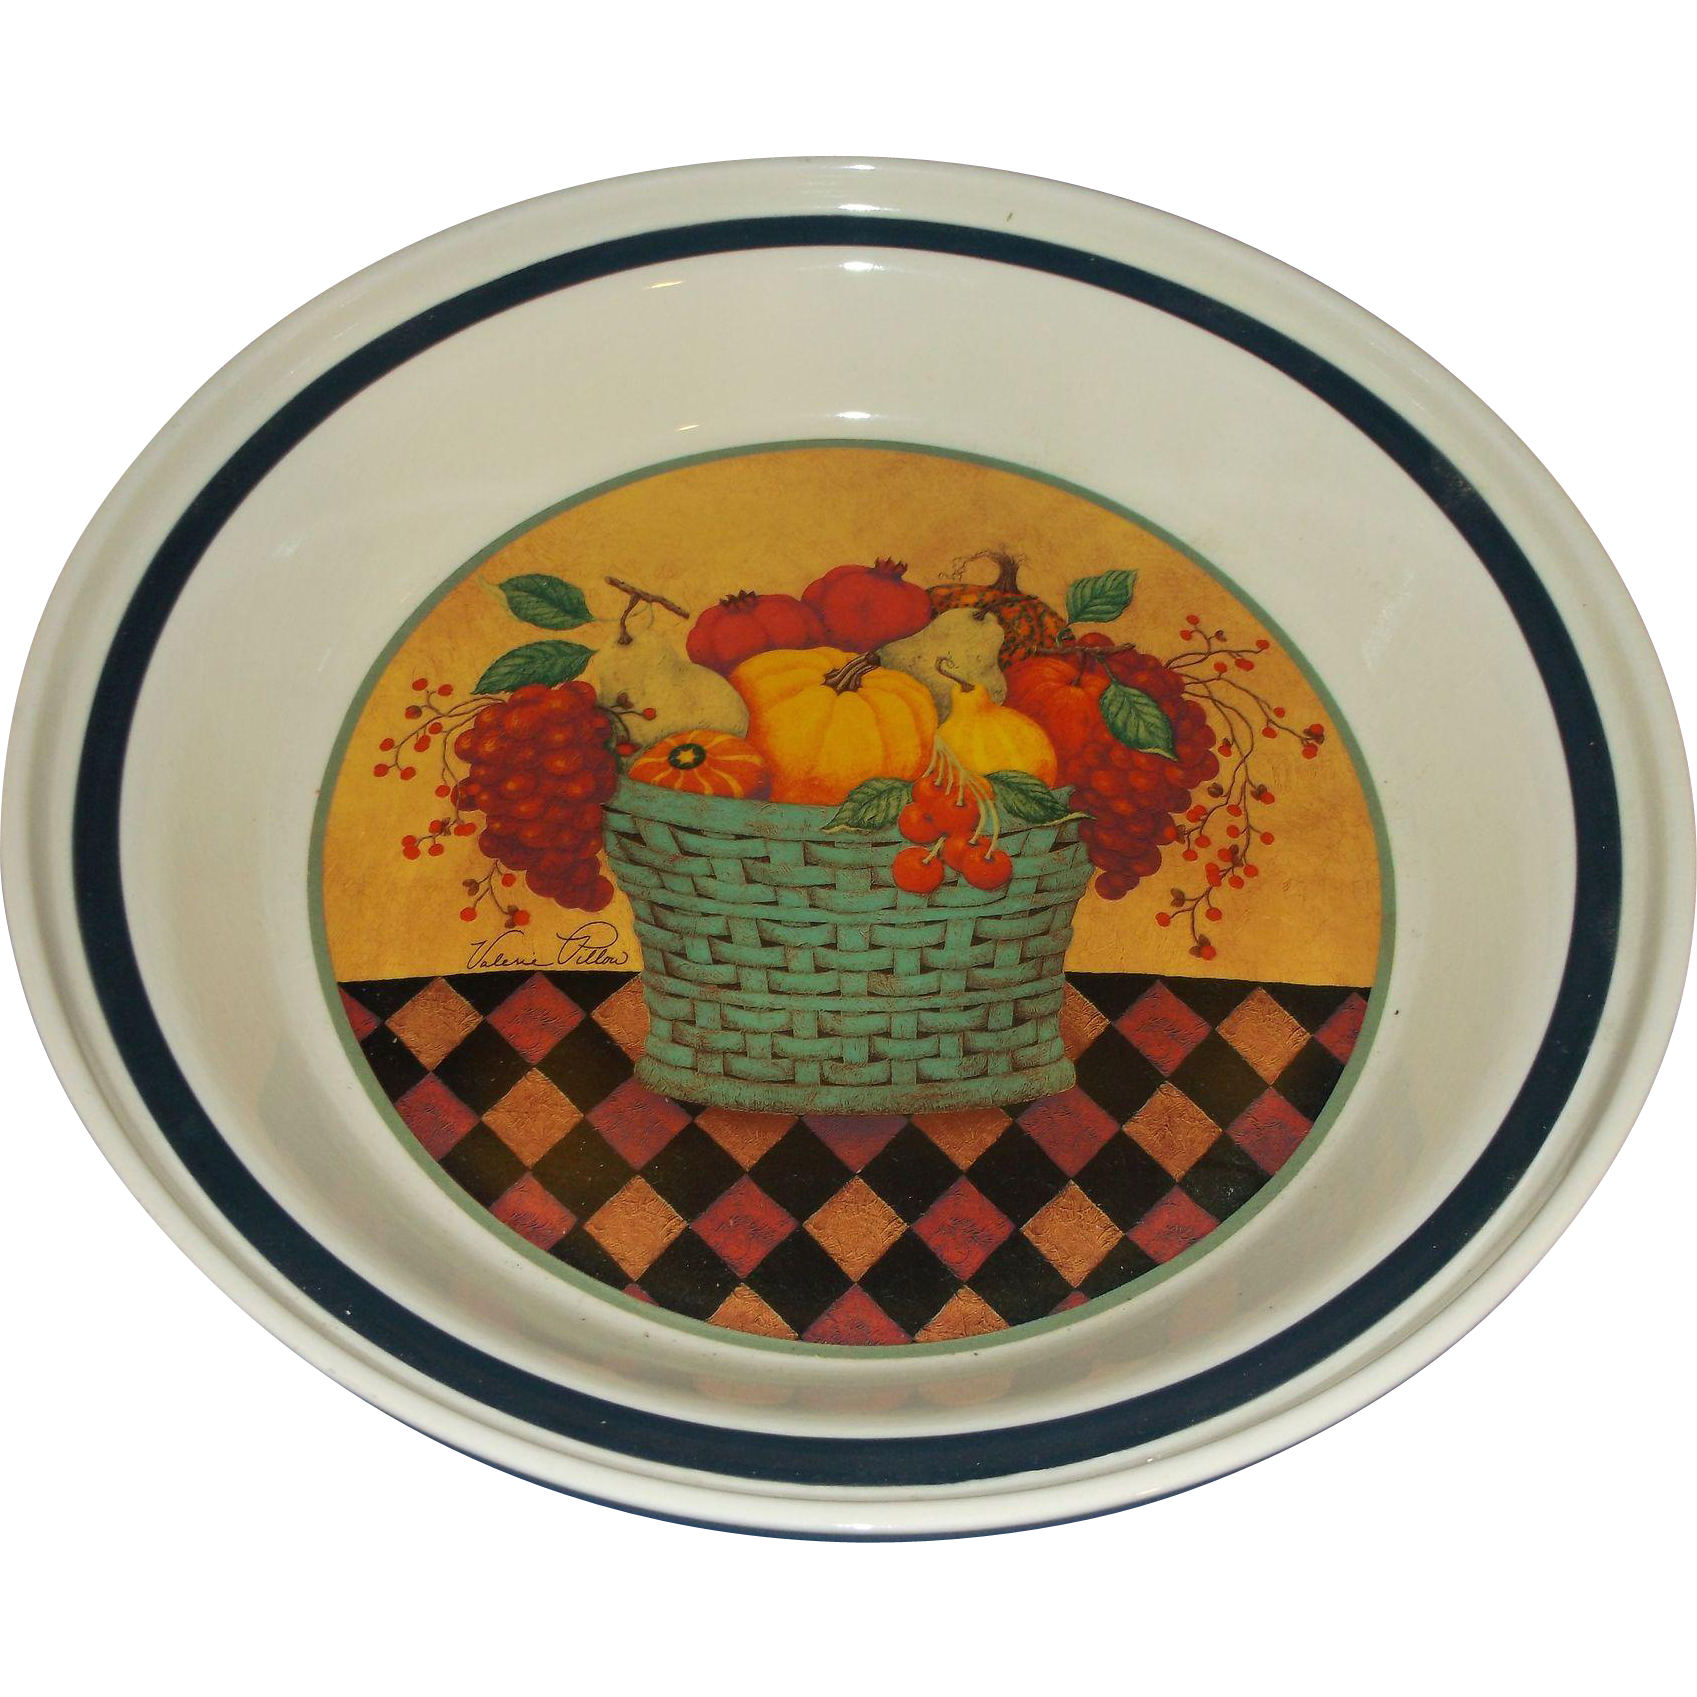 Valerie Pillow Hallmark Ceramic Pie Plate Harvest Theme Fruit Vegetable Basket